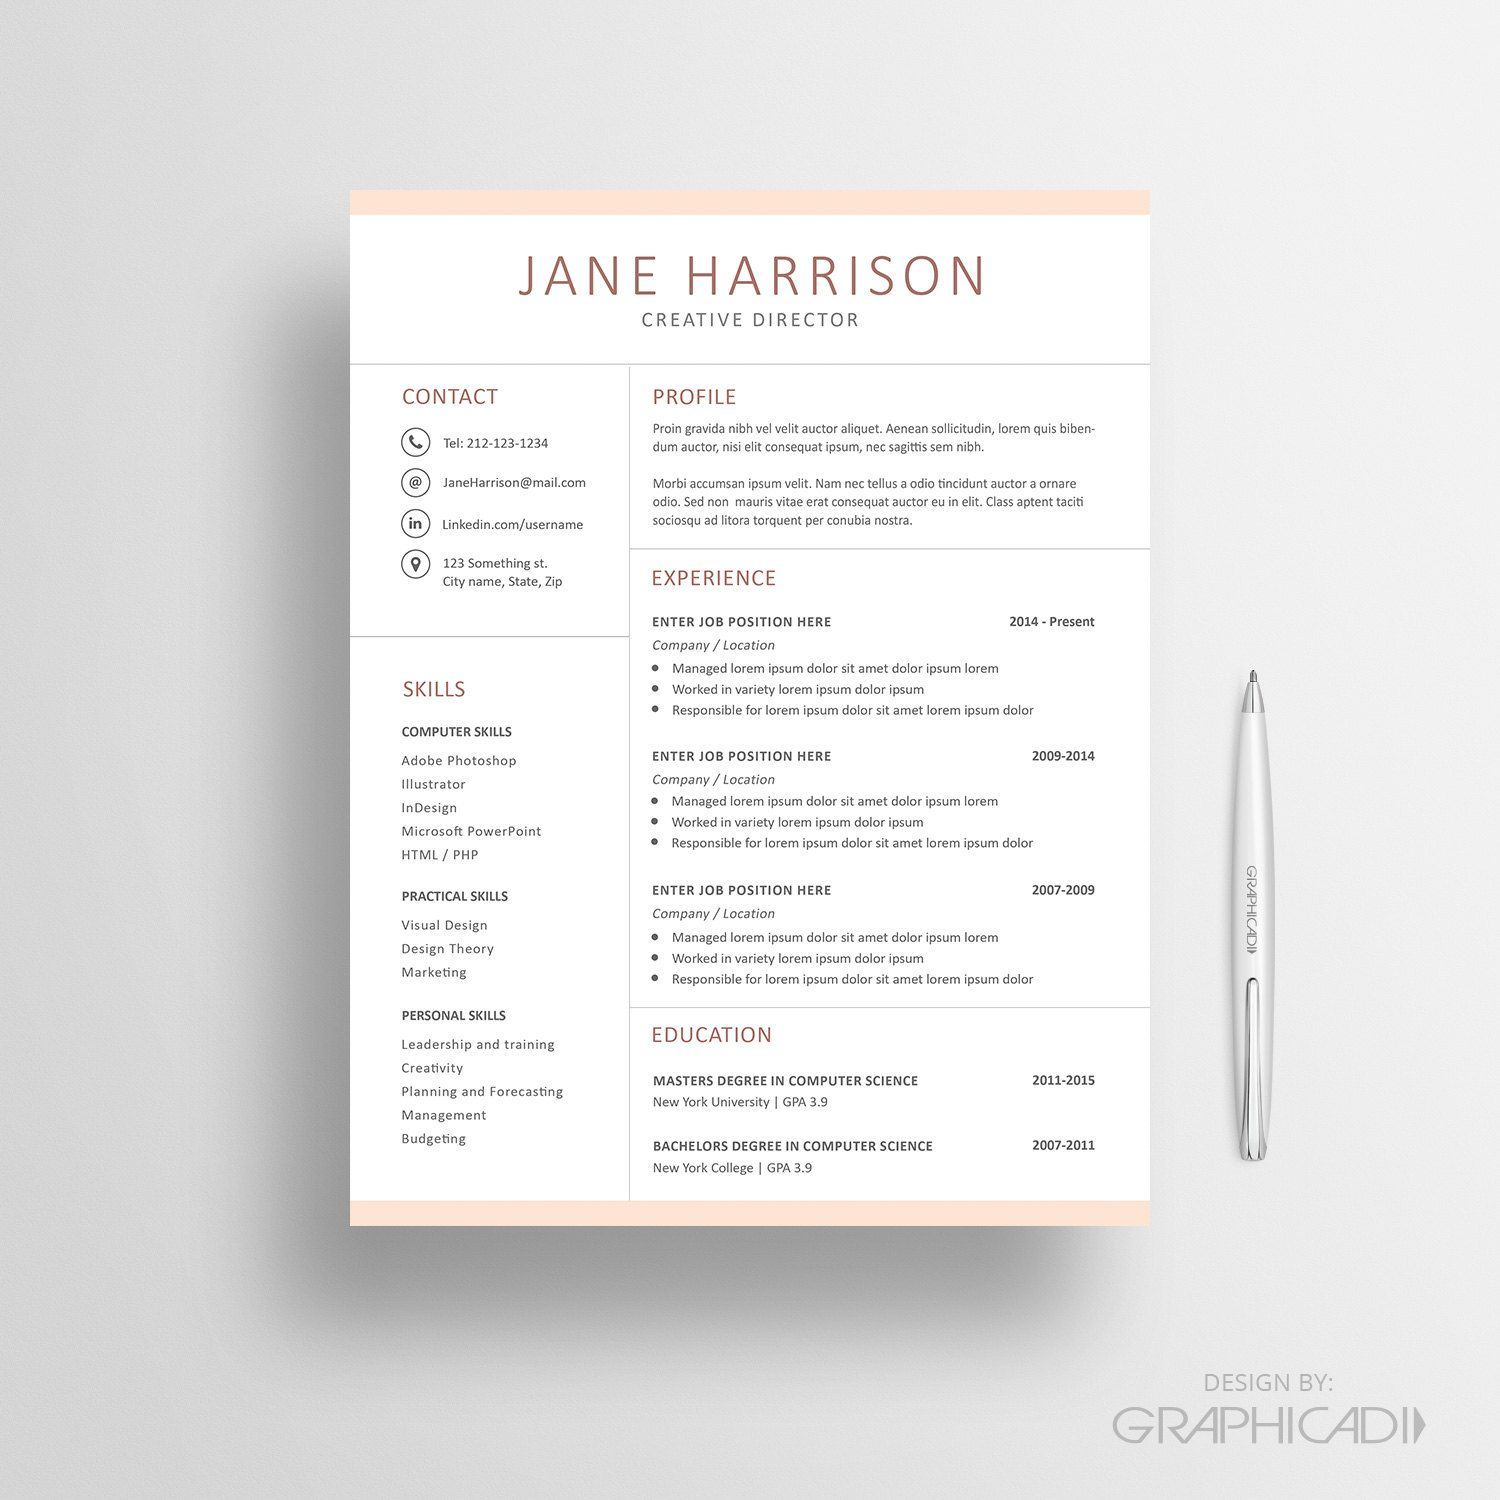 Resume template cv template cover letter and reference page for resume template cv template cover letter and reference page for ms word by graphicadi yelopaper